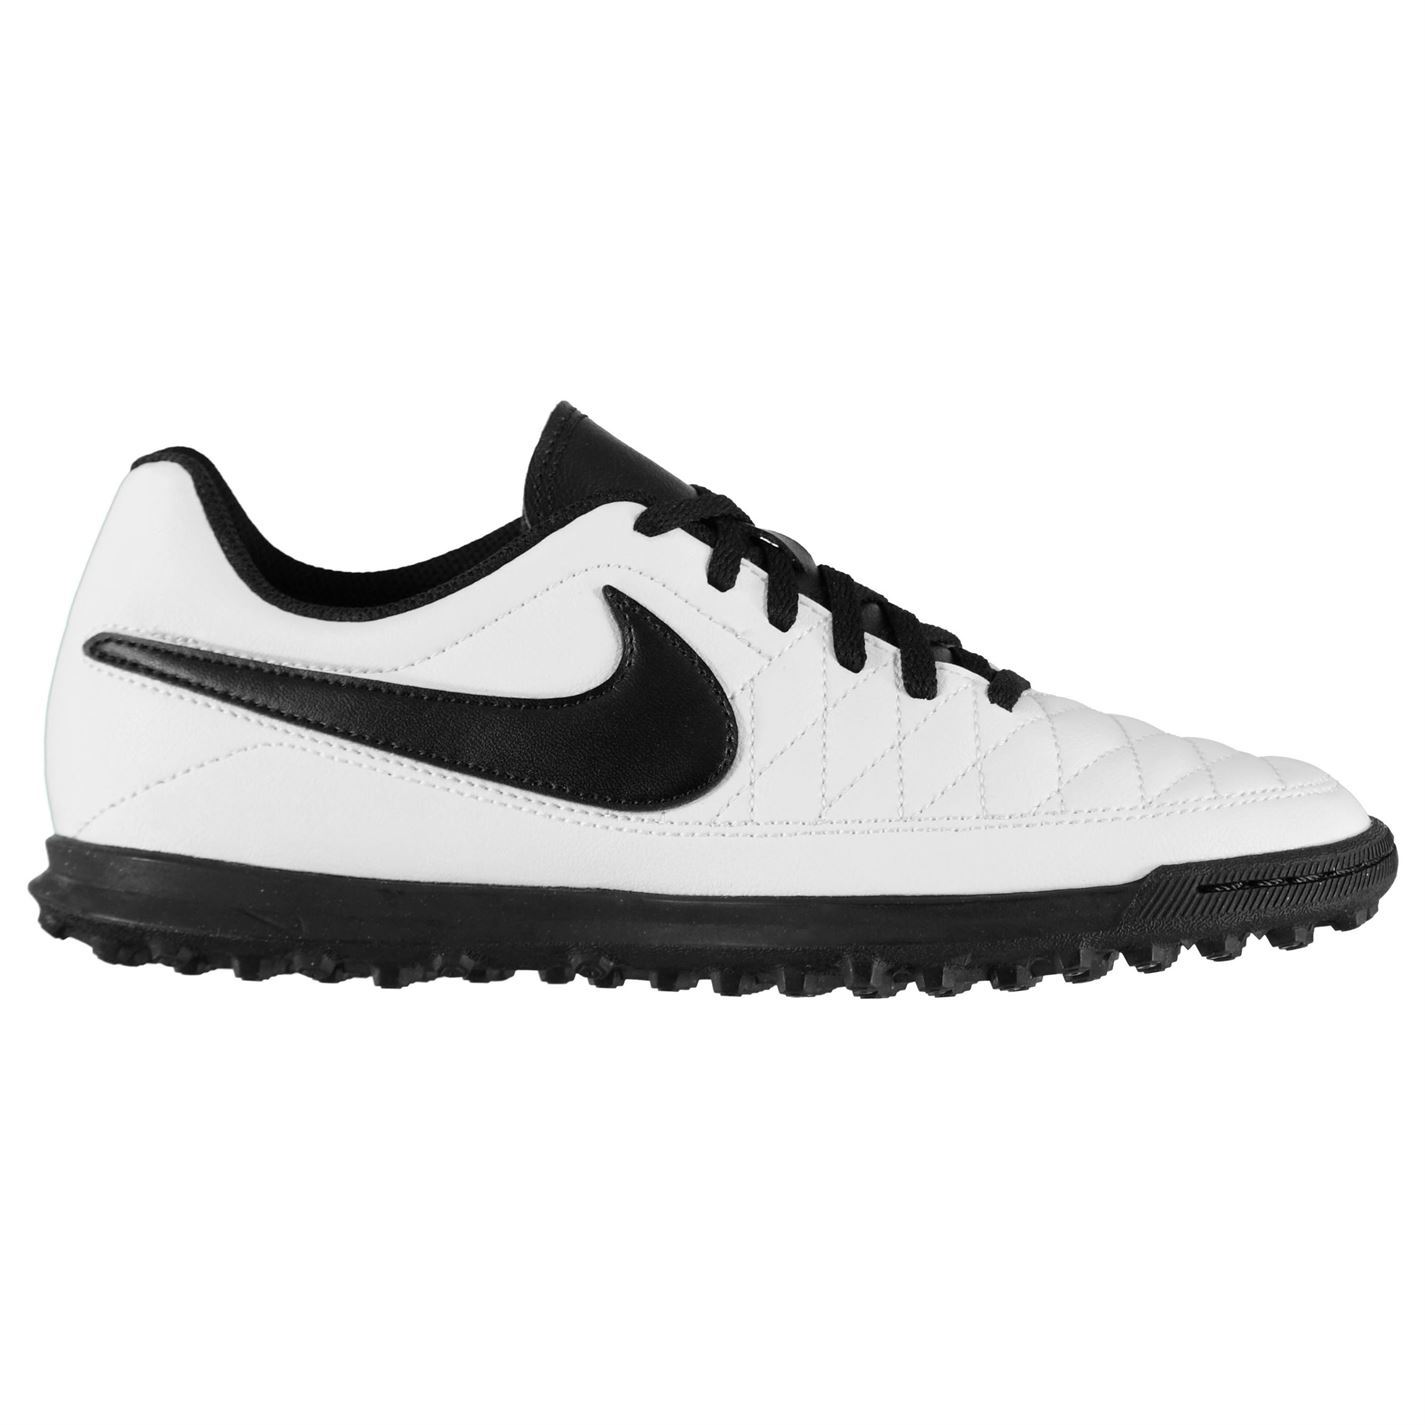 Nike-majestry-Astro-Turf-Football-Baskets-Pour-Homme-Football-Baskets-Chaussures miniature 15